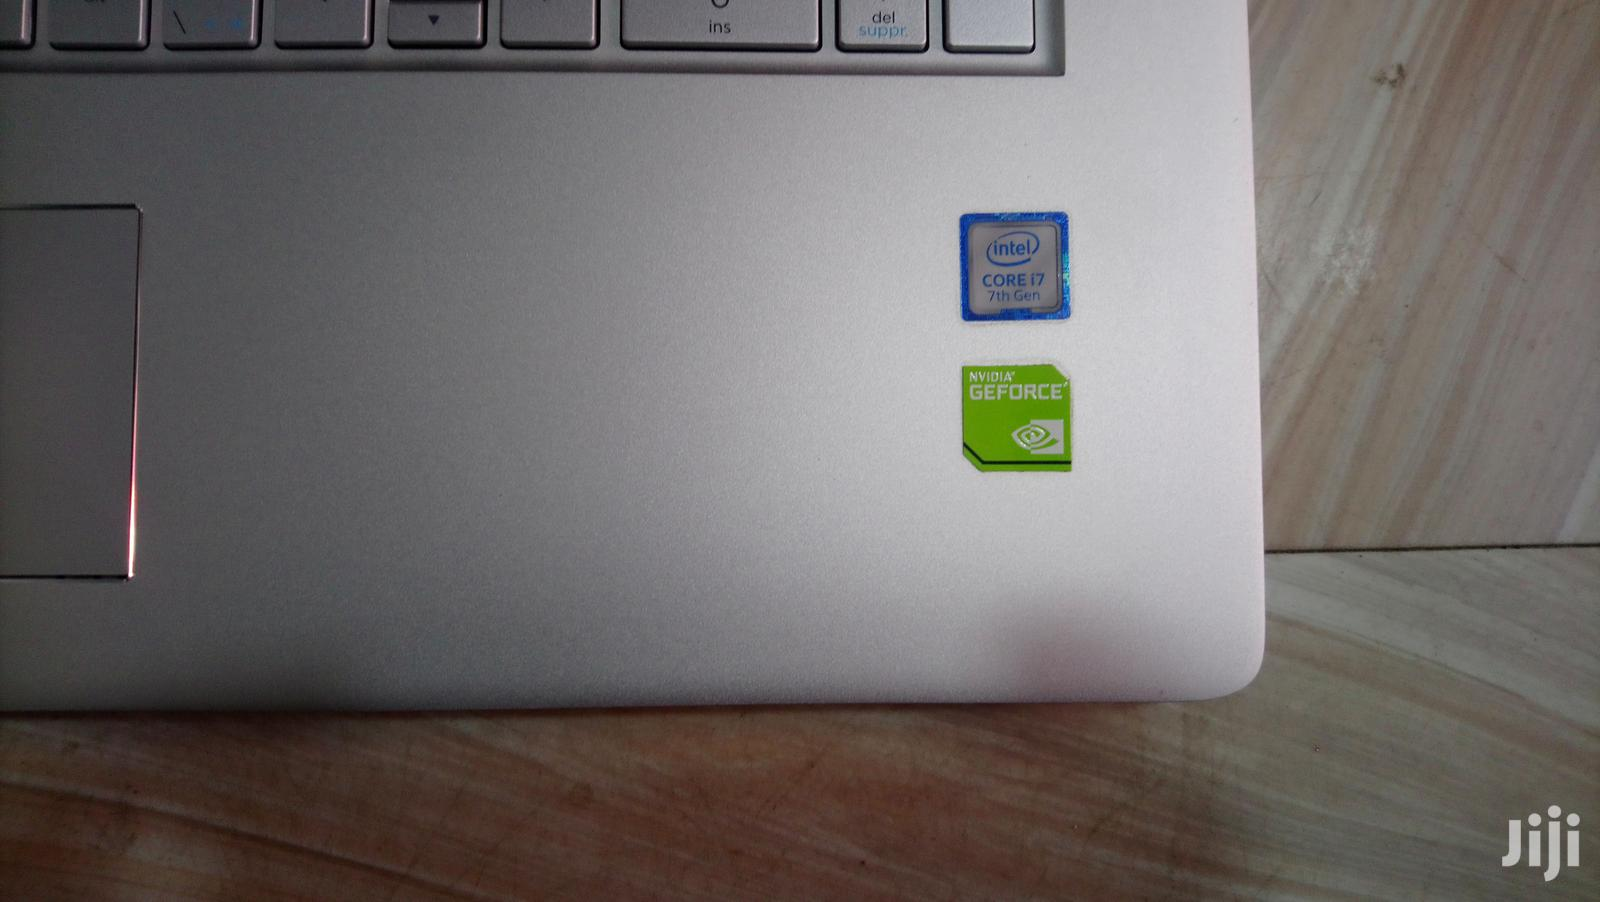 Laptop HP Envy 17 12GB Intel Core I7 SSHD (Hybrid) 1T | Laptops & Computers for sale in East Legon, Greater Accra, Ghana